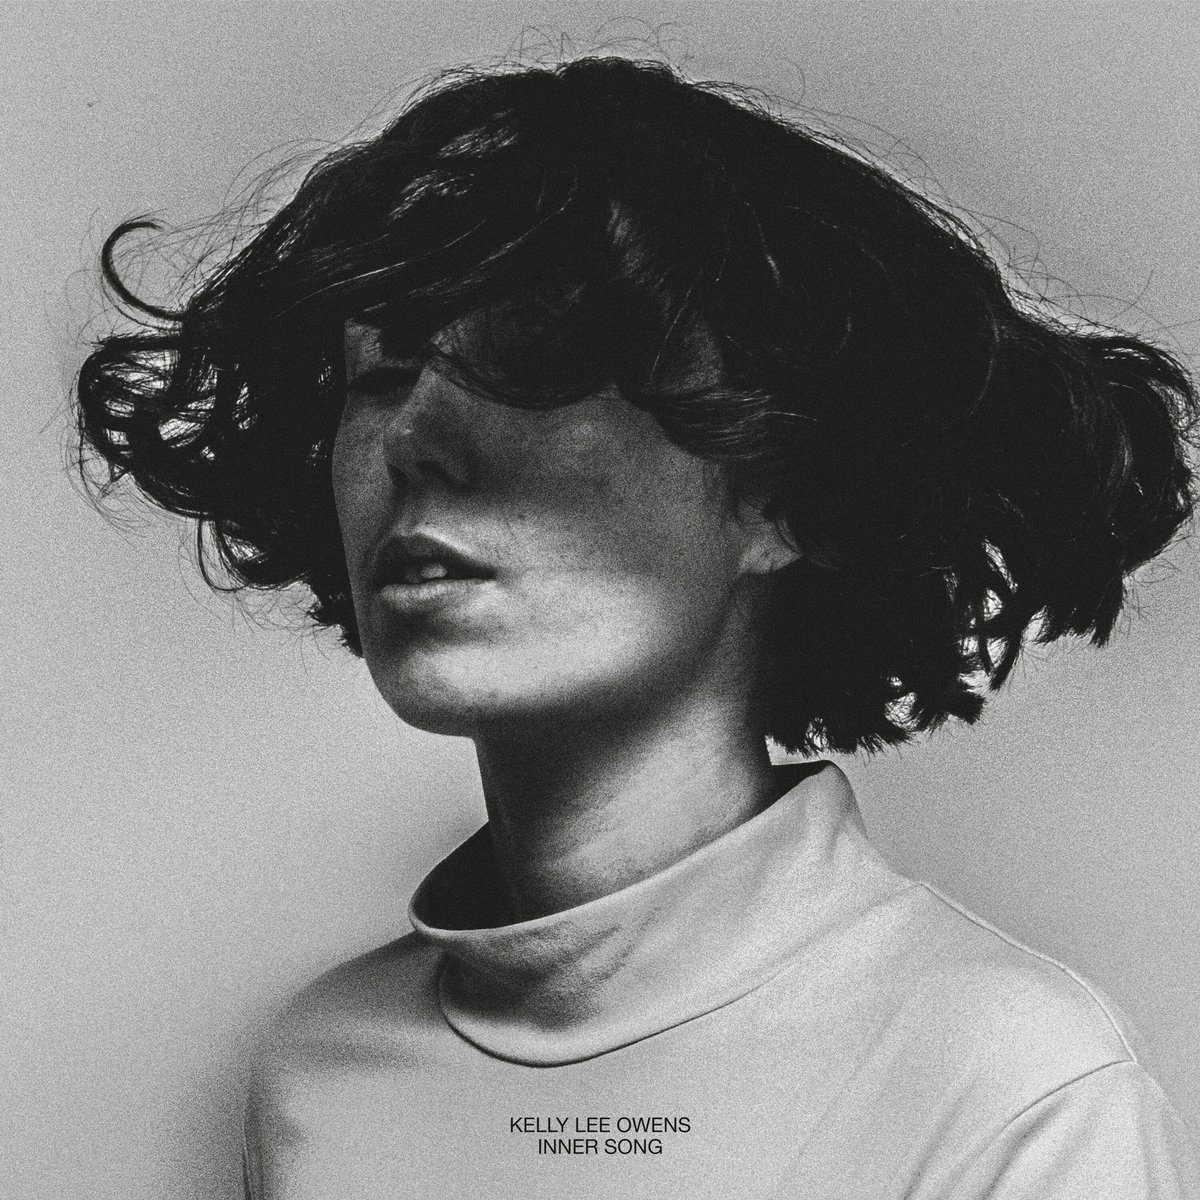 Kelly Lee Owens — Inner Song (Smalltown Supersound, 2020)